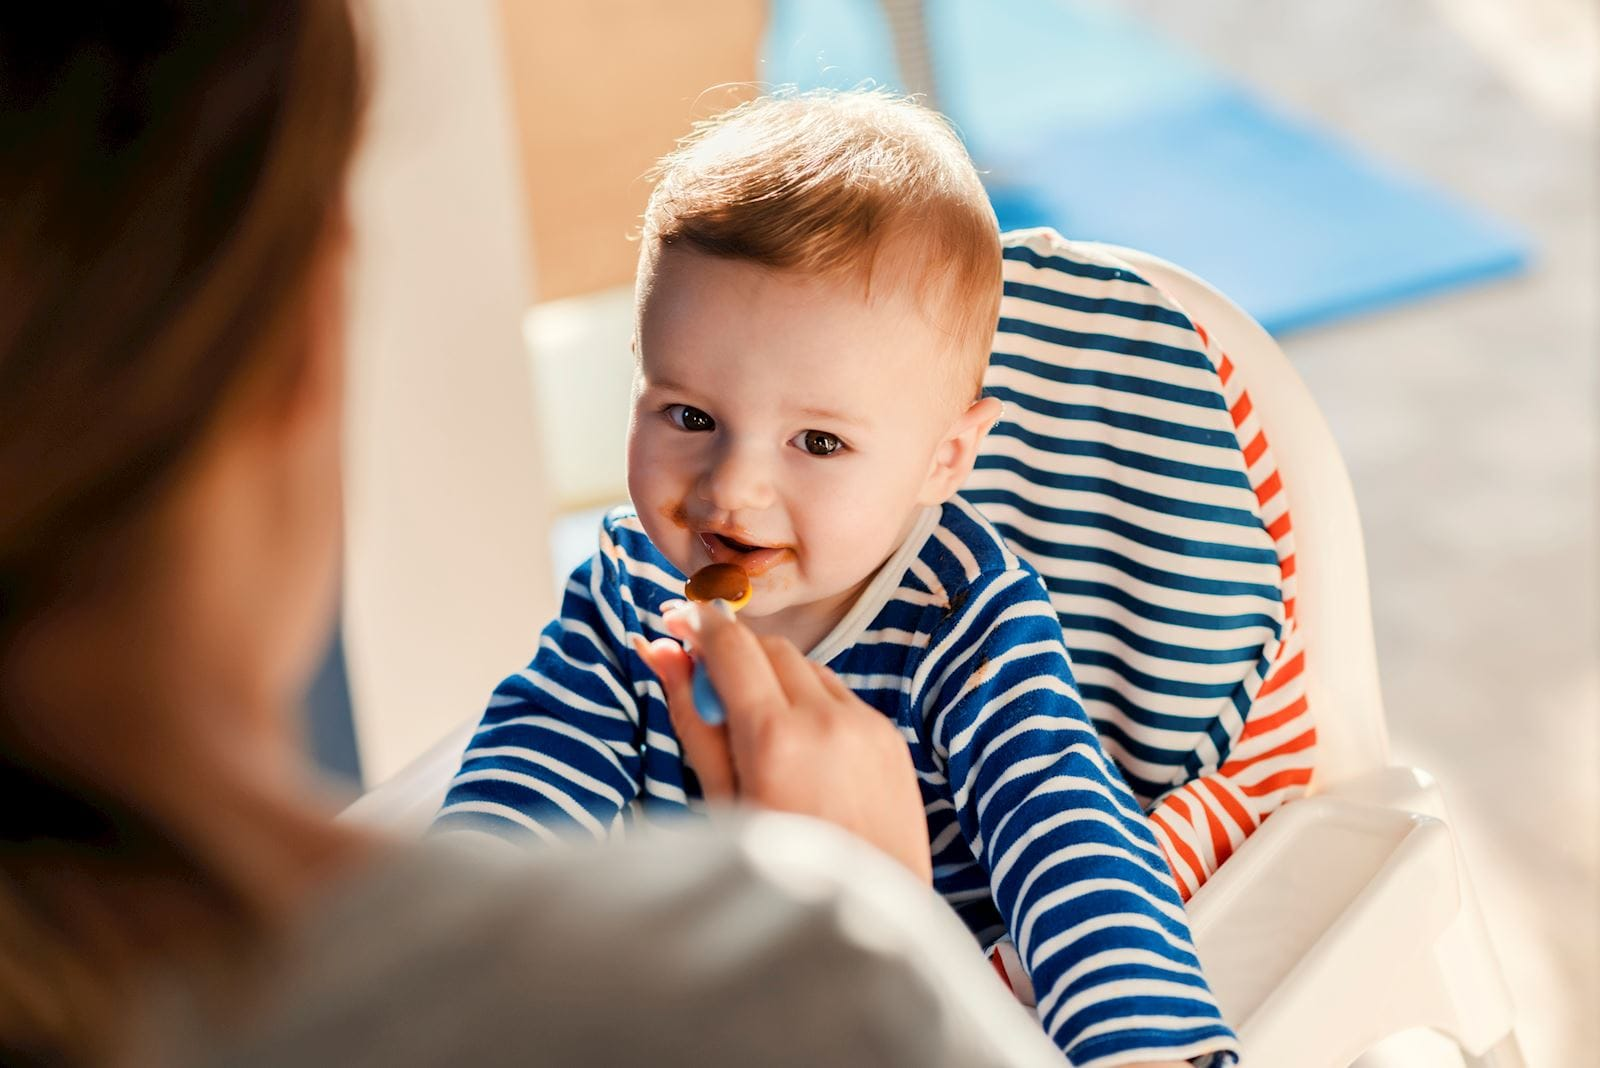 Baby eating food from a spoon